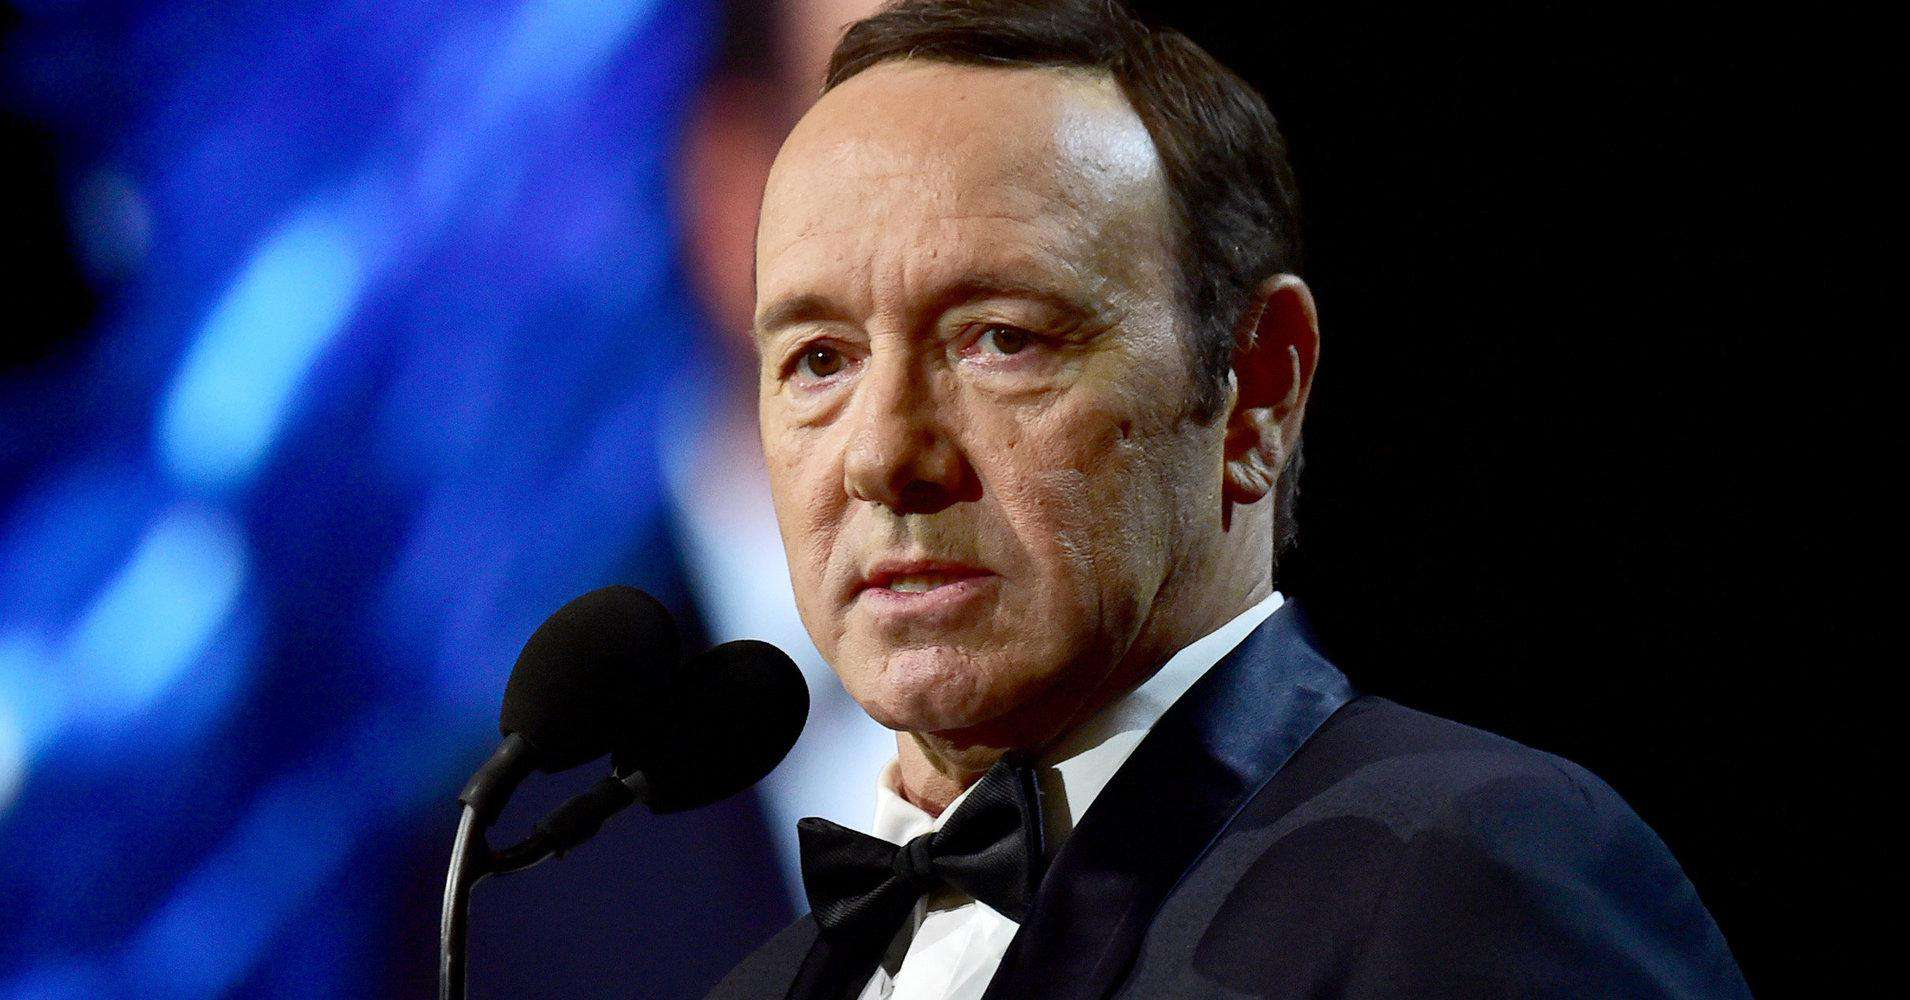 Kevin Spacey Groped Massage Therapist And Tried To Force Oral Sex, Lawsuit Alleges